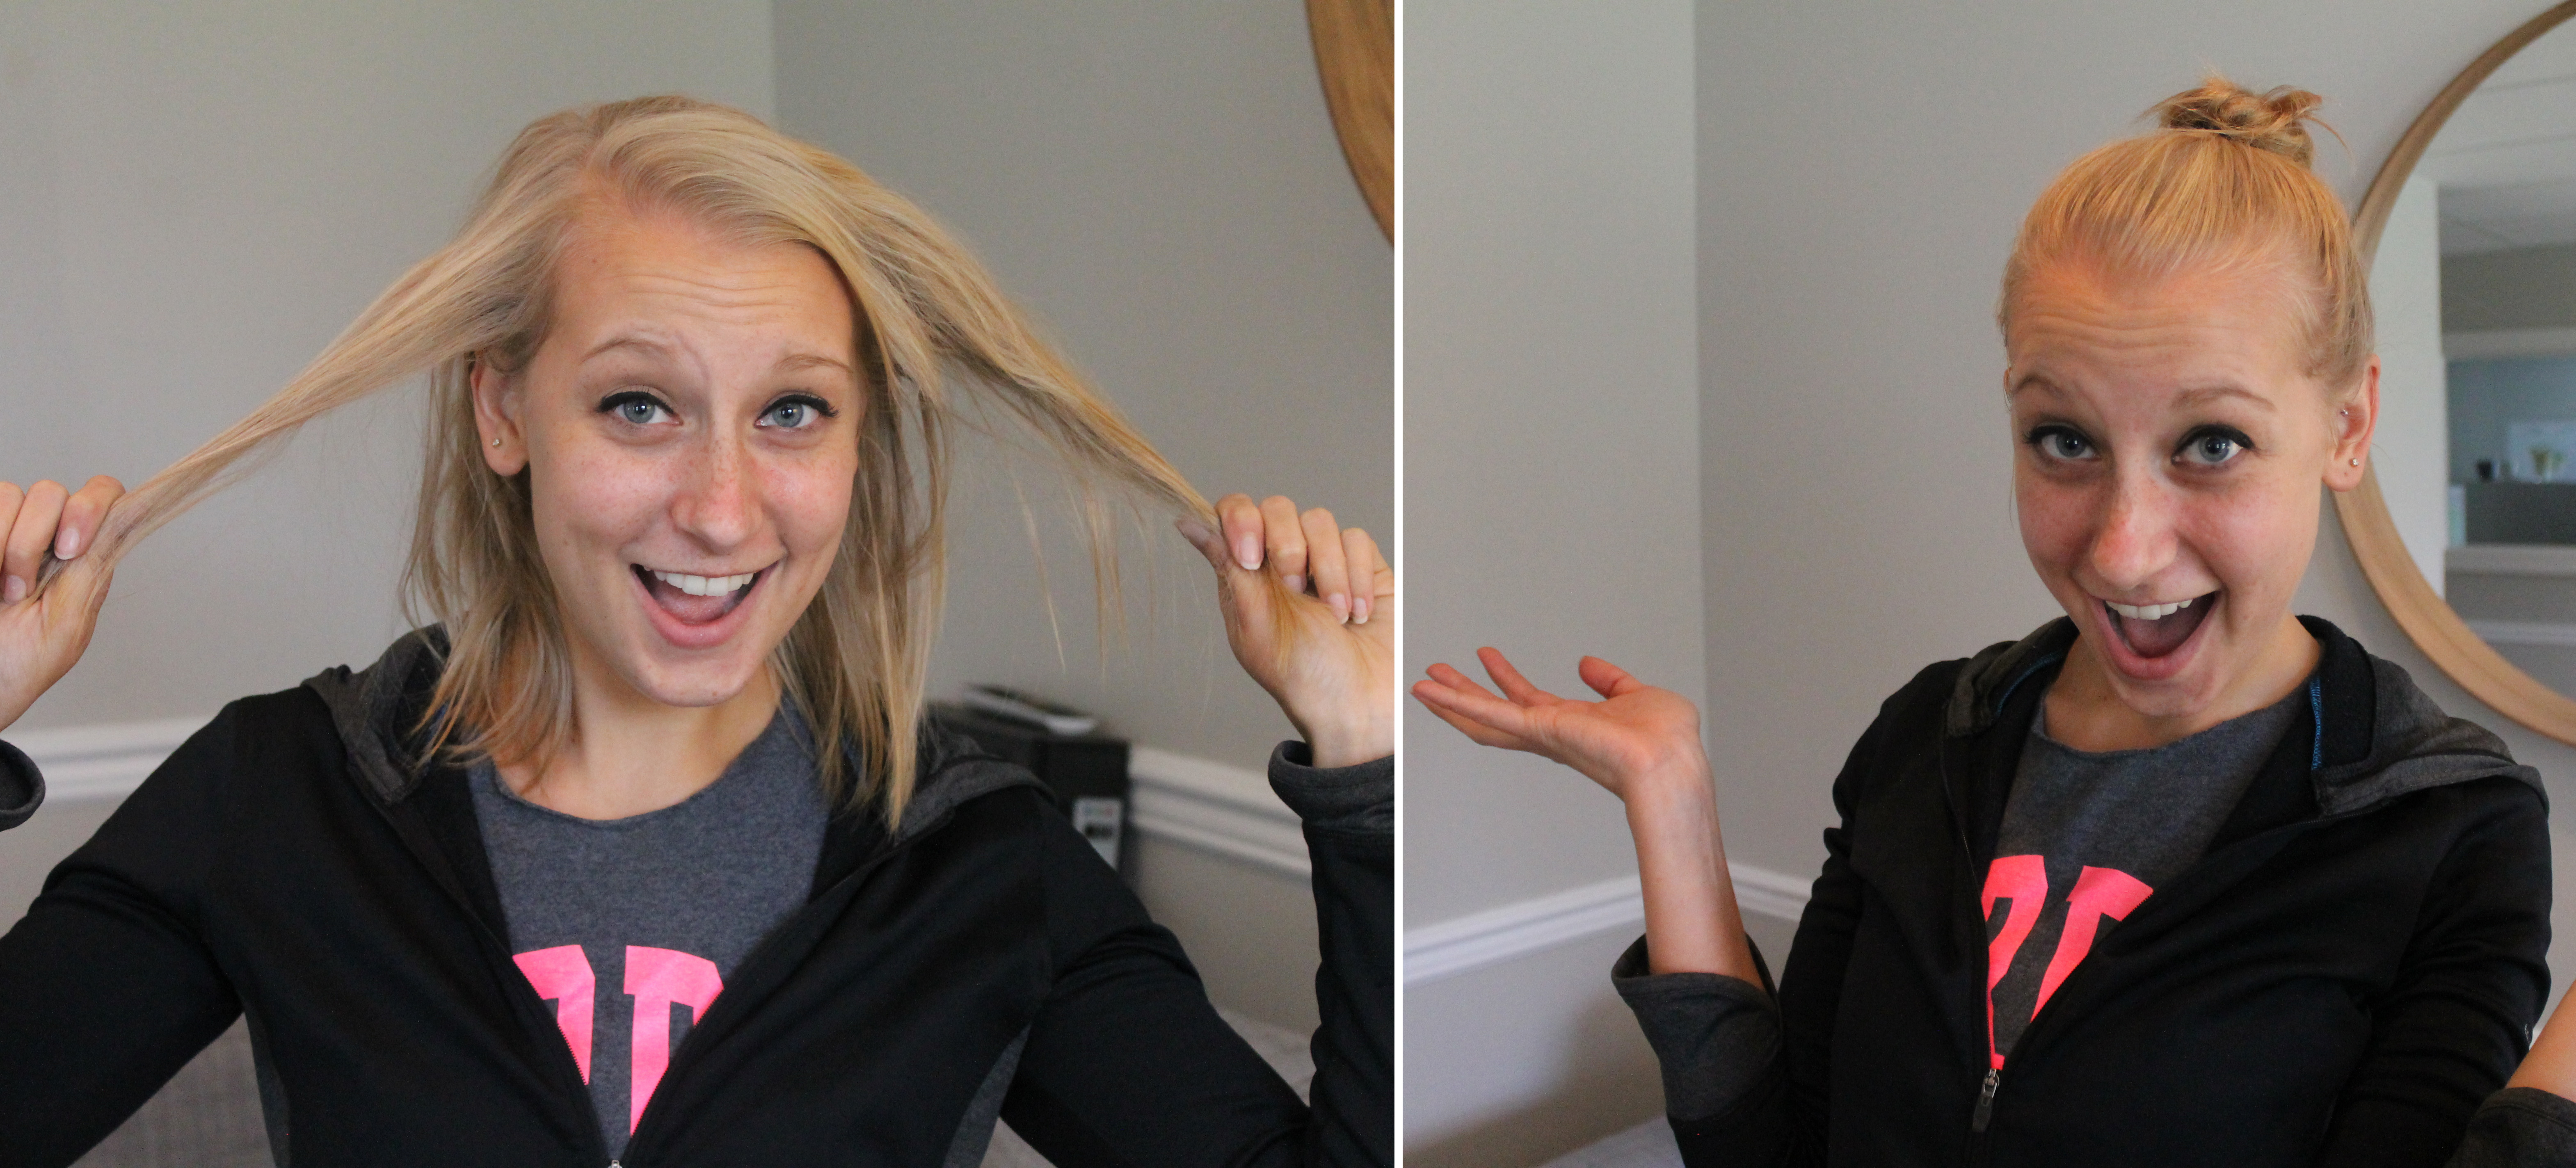 How To Do A Bun With Short Hair In Two Different Styles